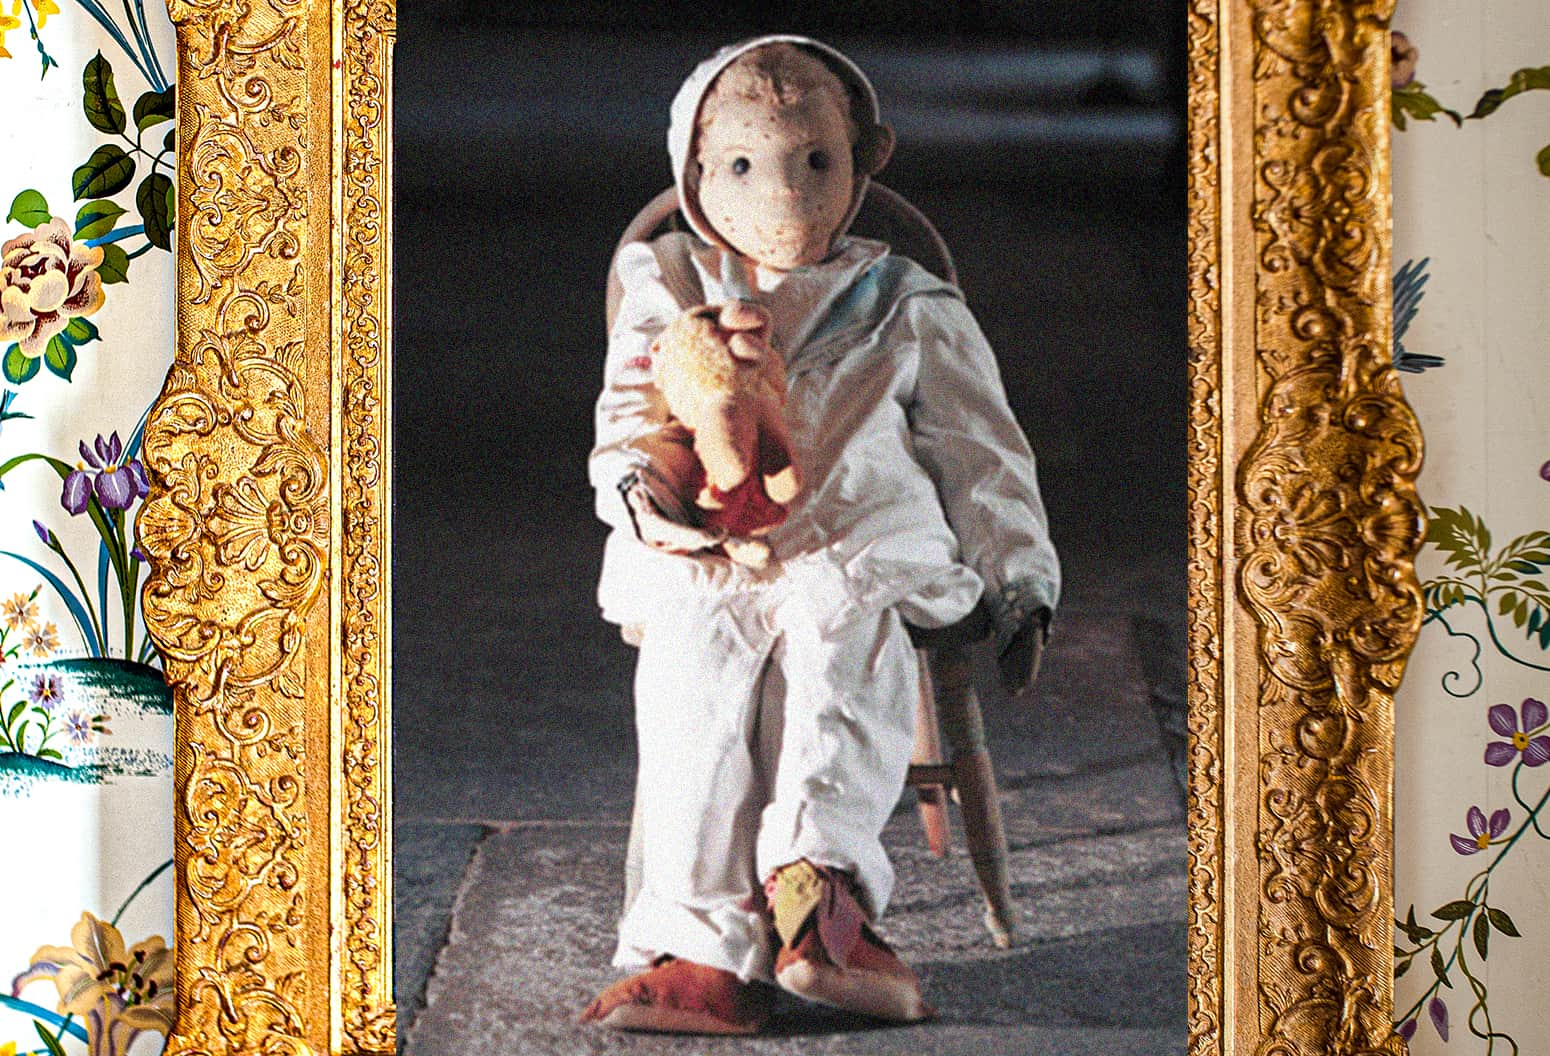 Portrait of Robert the Doll from our Key West inn